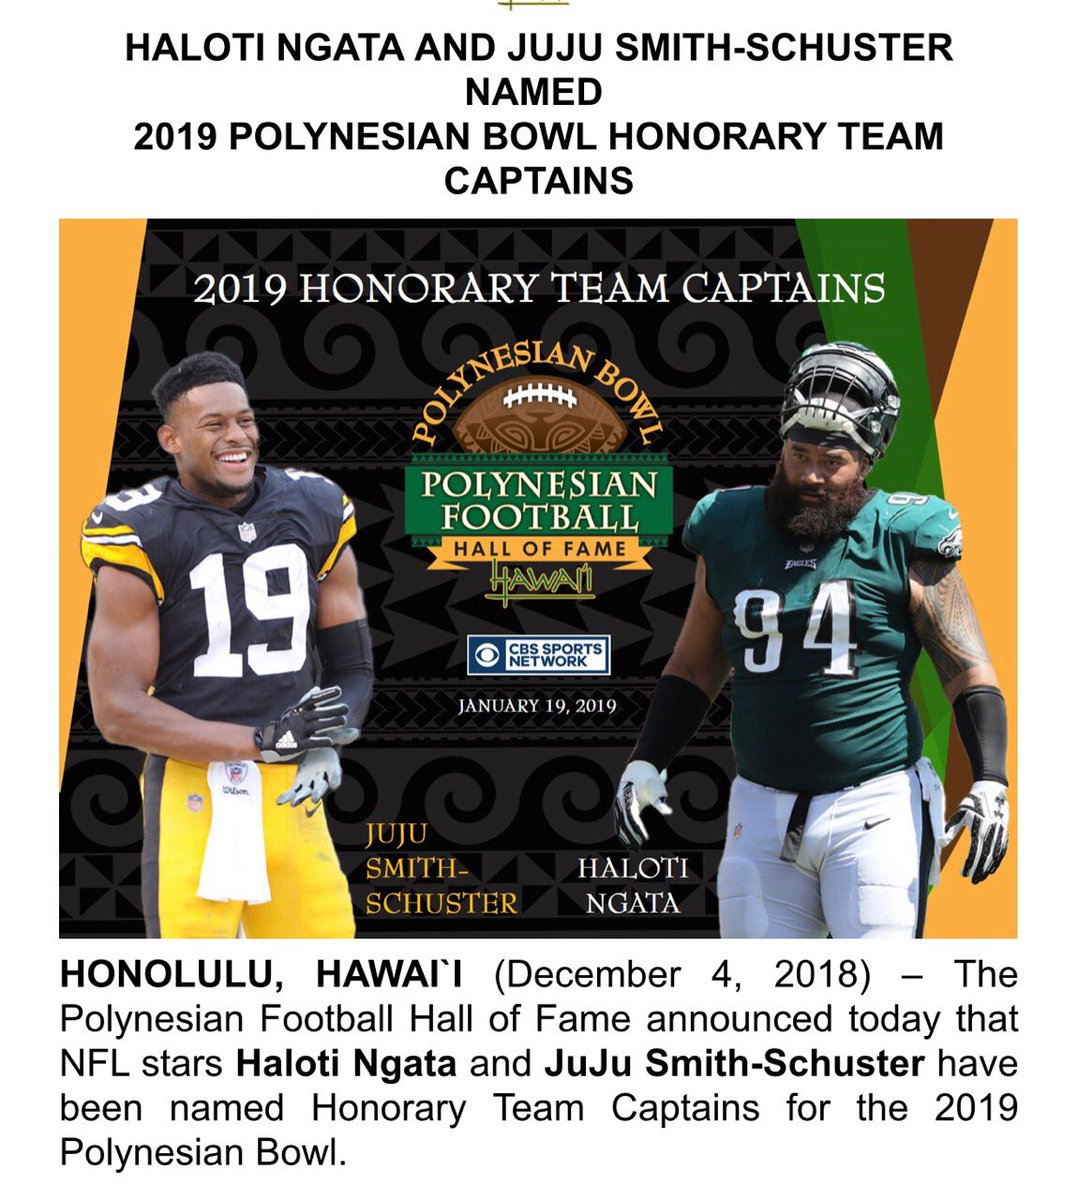 So honored to be one of the coaches for the Polynesian Bowl!! Thank you for this honor @polynesiabowl 🙌🏾🙌🏾